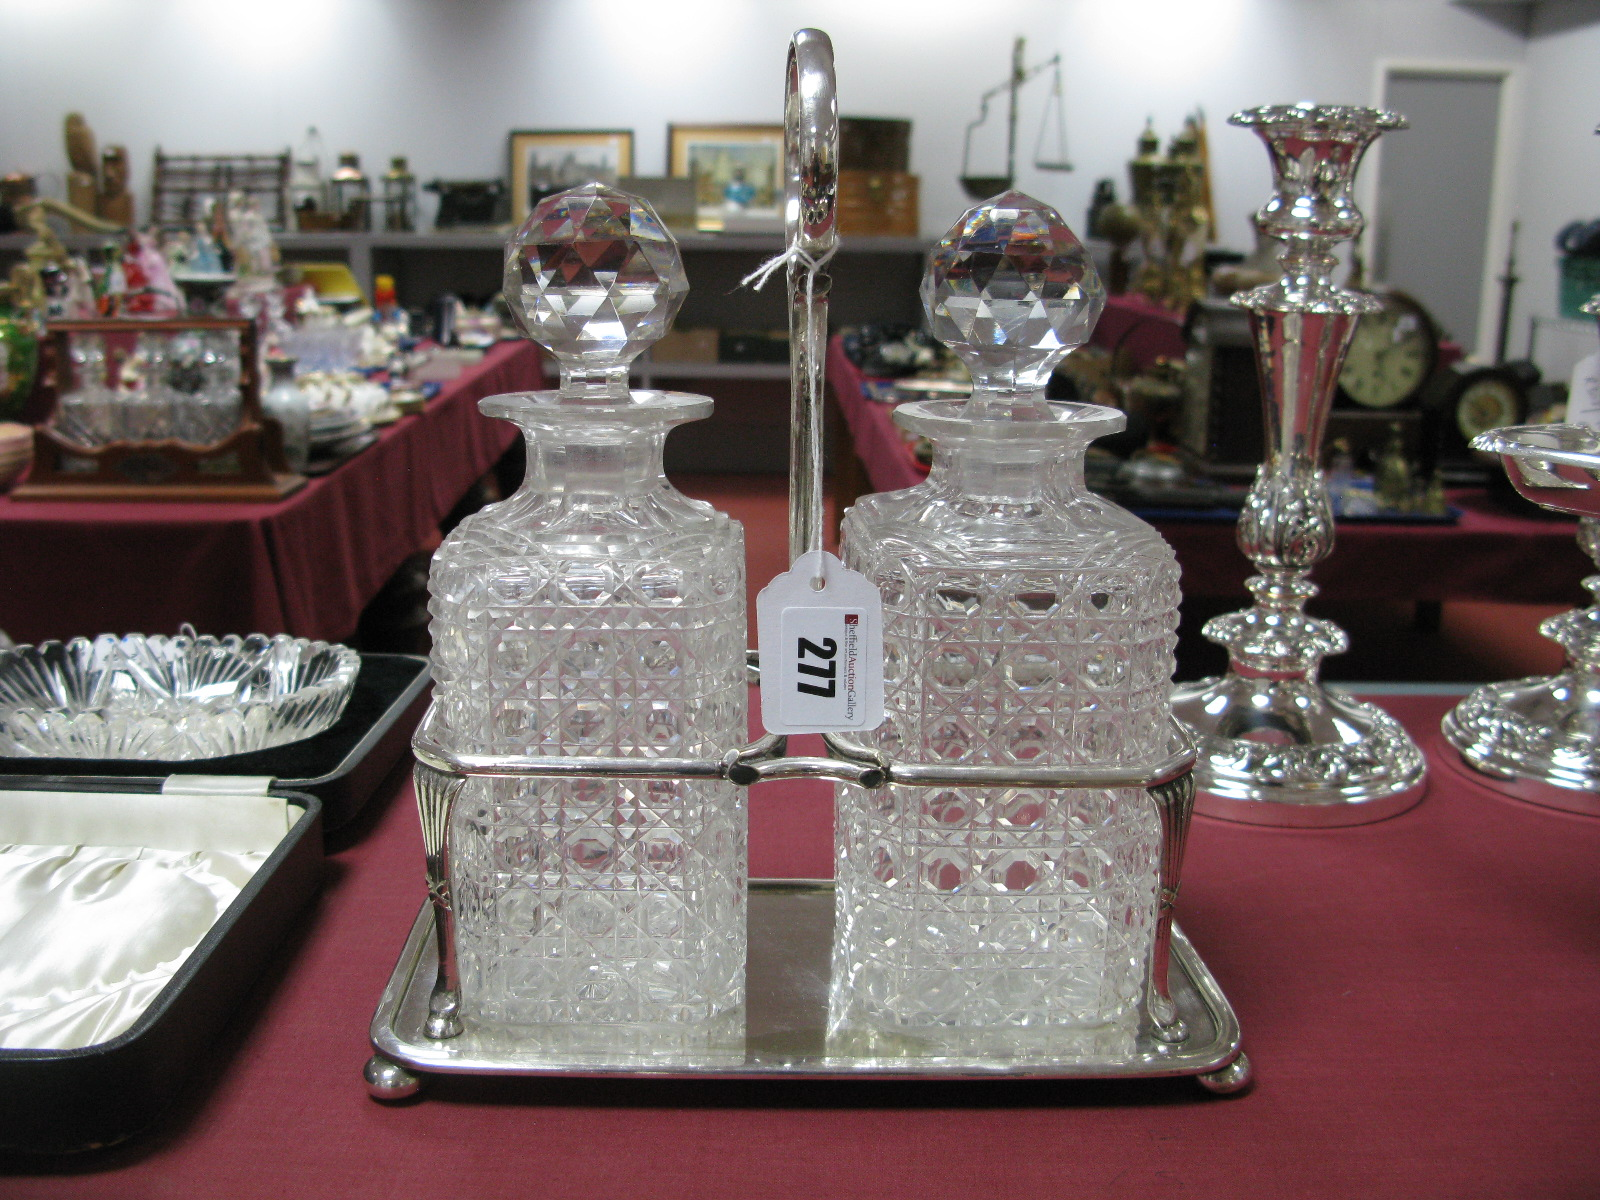 Lot 277 - A JBC&SLtd Plated Two Bottle Decanter Stand, fitted with cut glass stoppered decanters, the stand